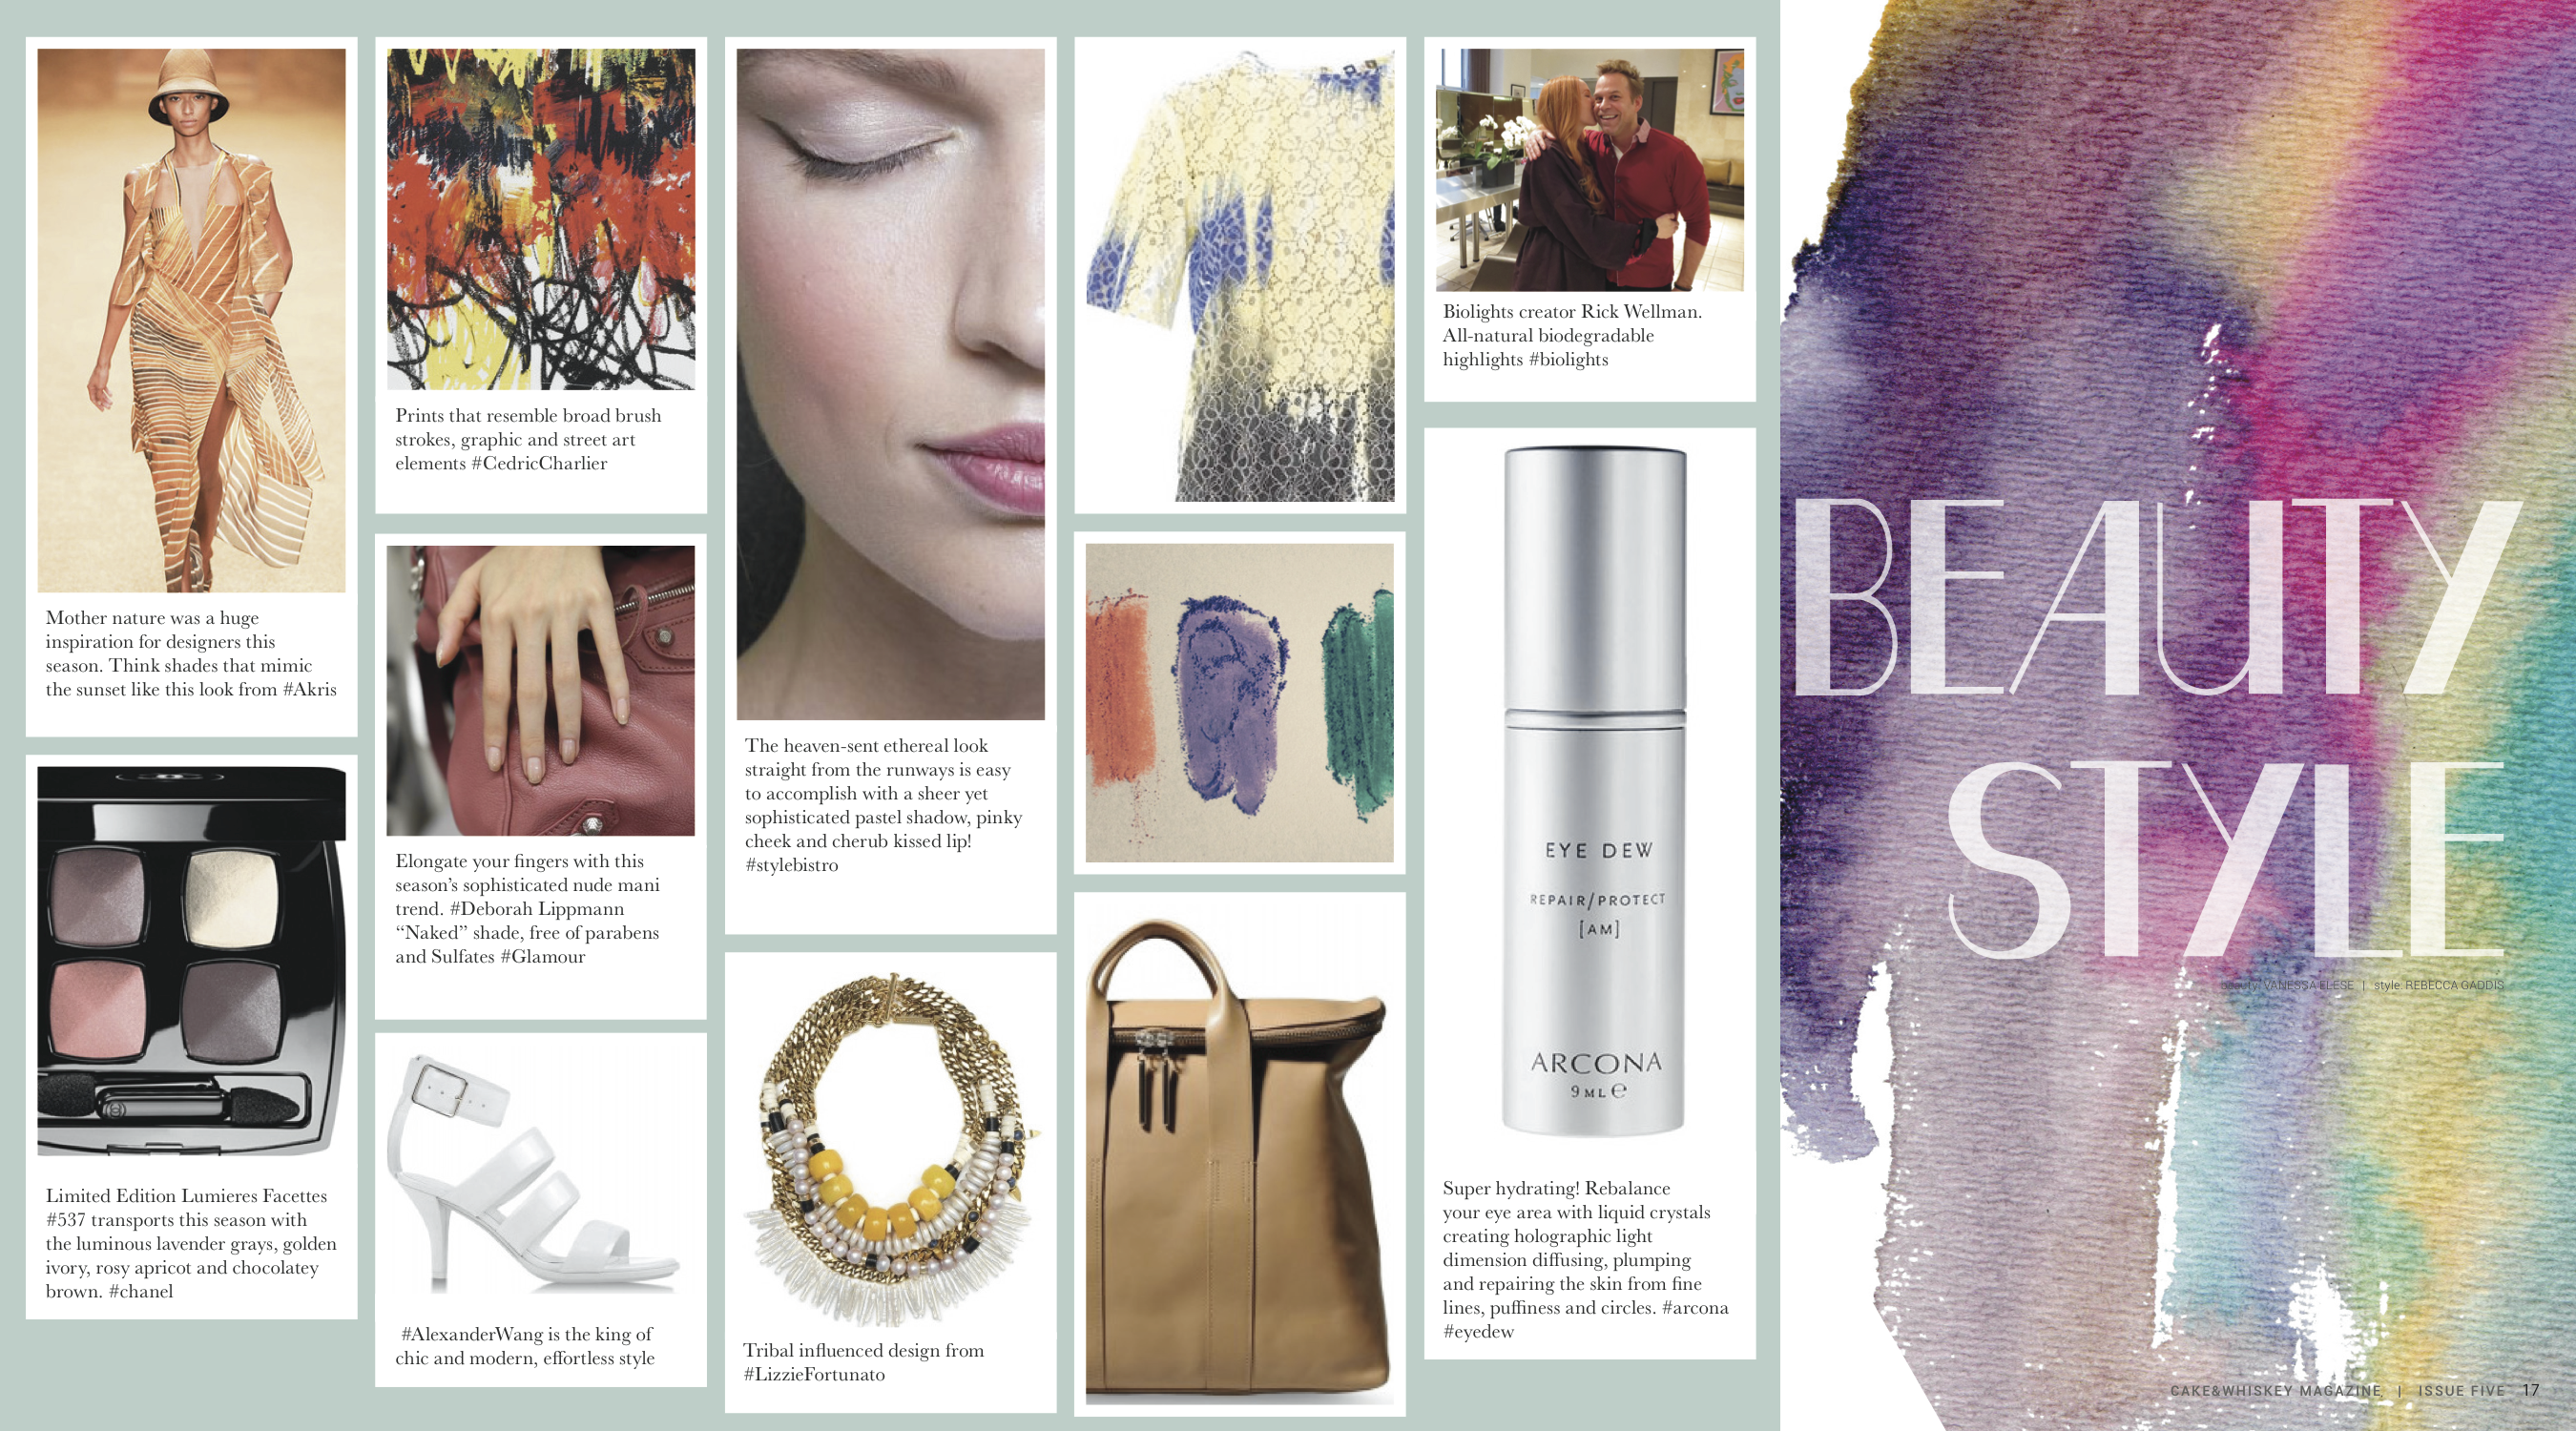 C&W Spring_April2014 - Beauty:Style copy 2